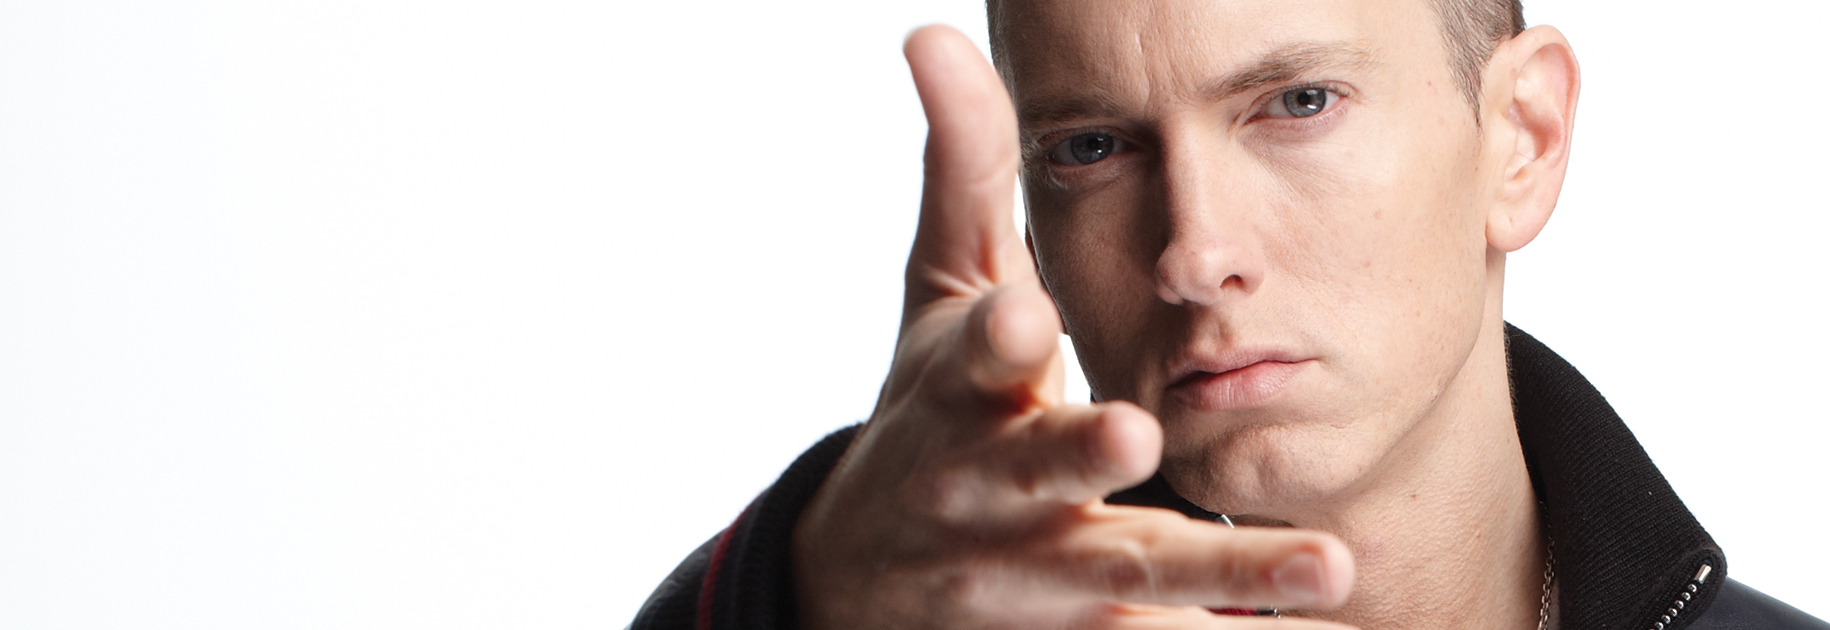 Eminem Rap God freestyle